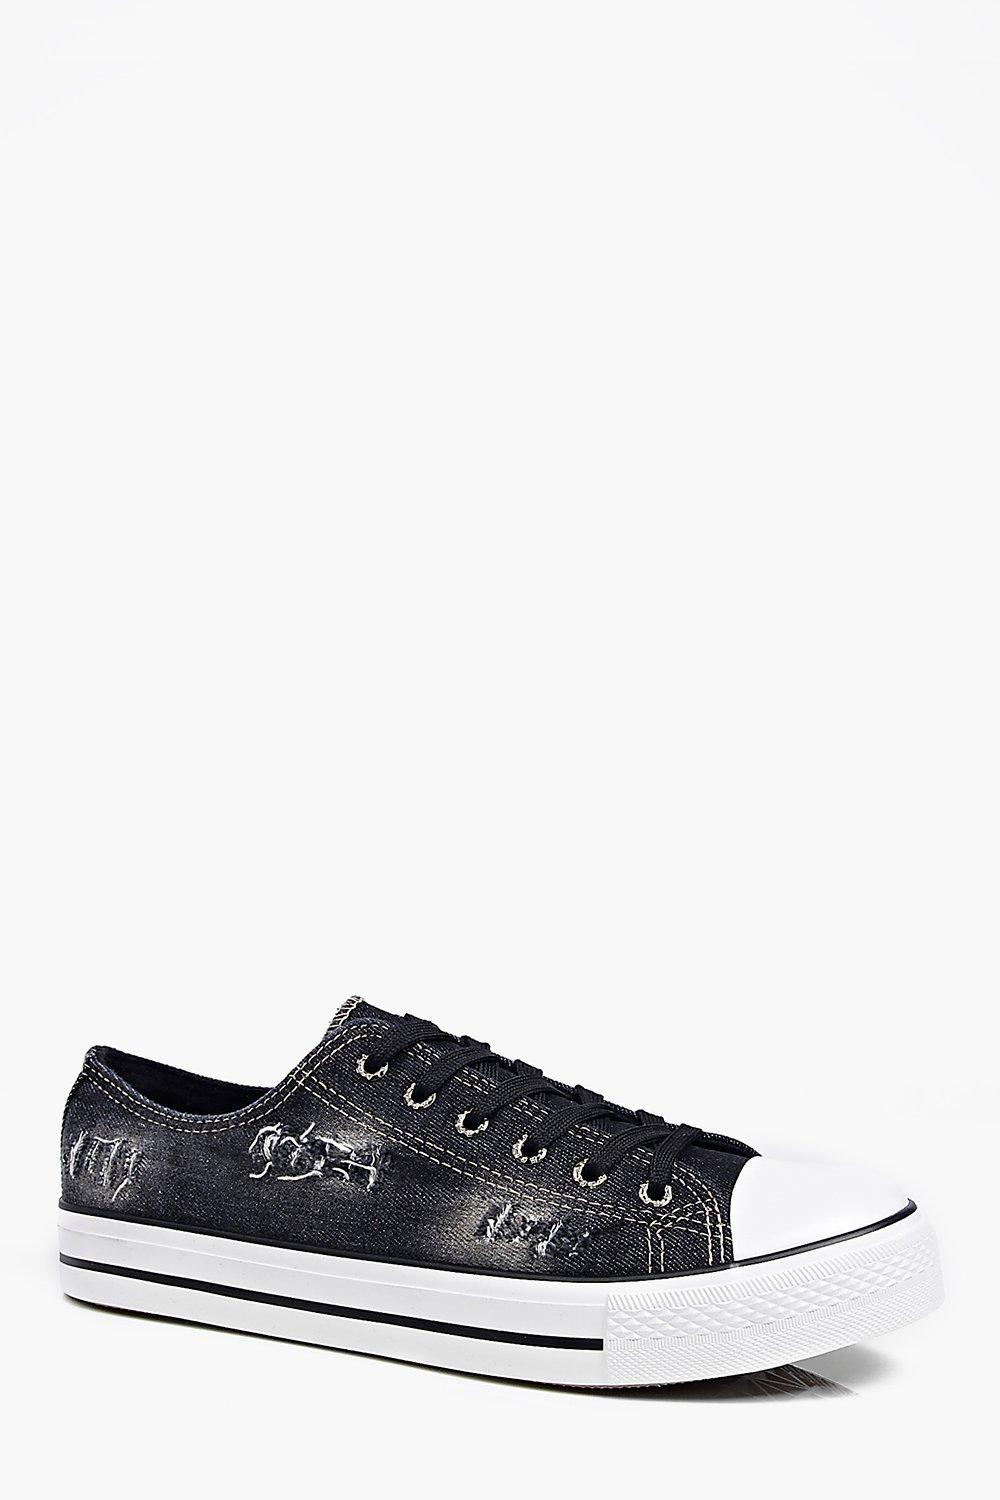 Distressed Washed Black Lace Up Plimsolls